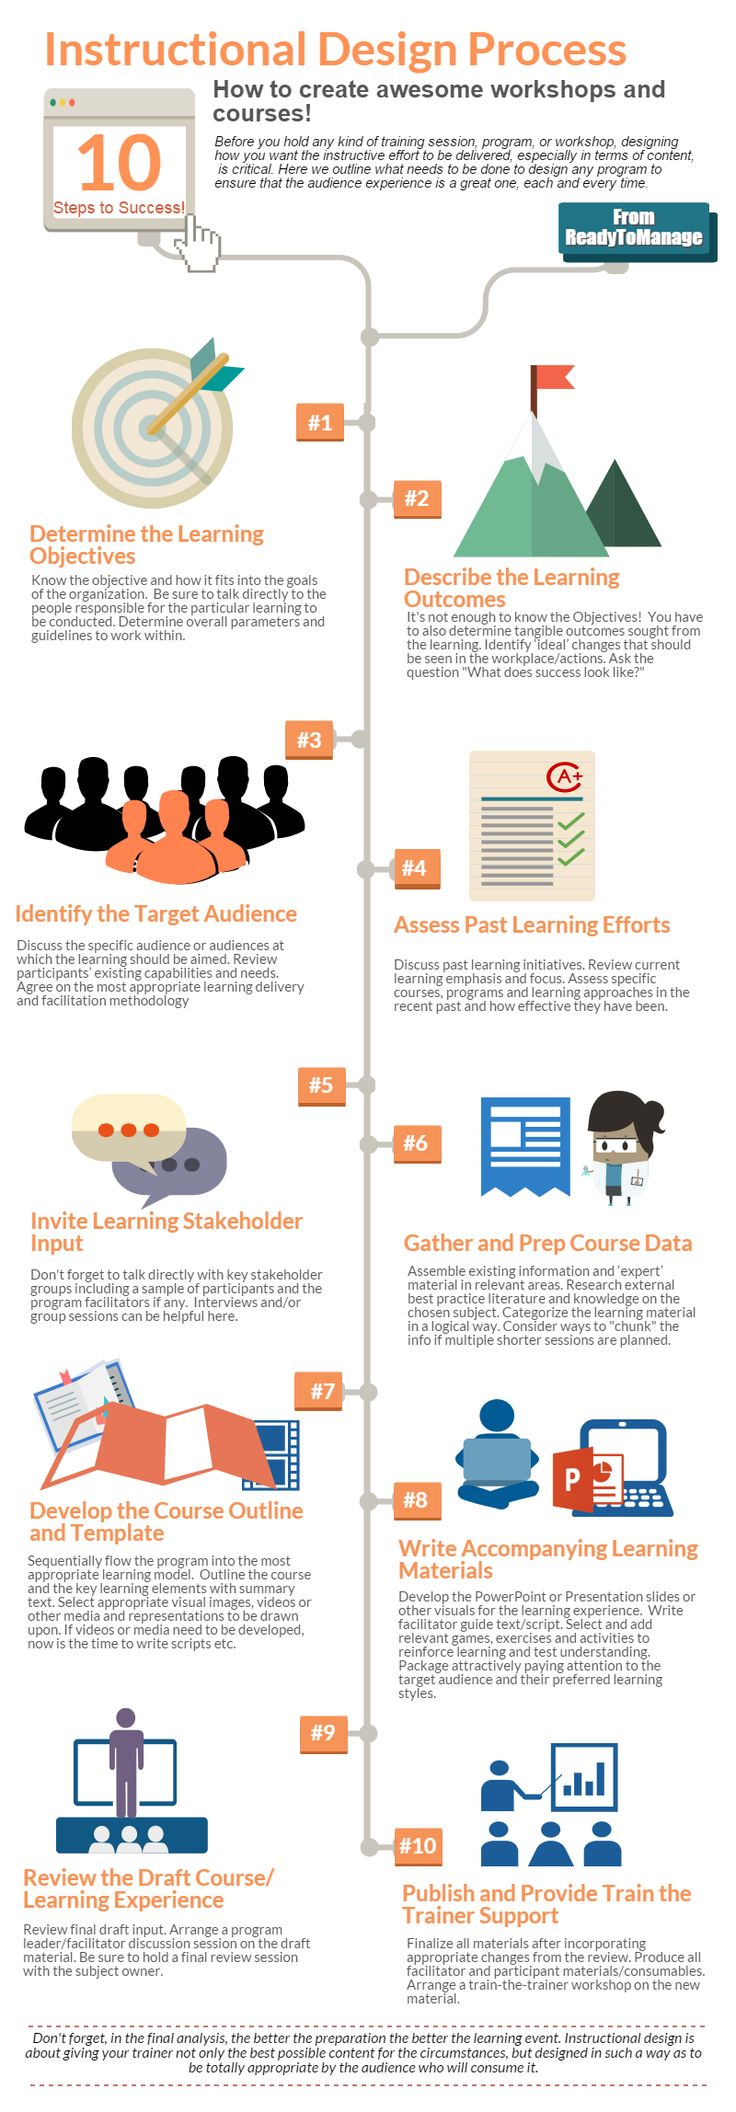 Why is Good Instructional Design More Important than Ever in the Modern World? #infographic #elearning